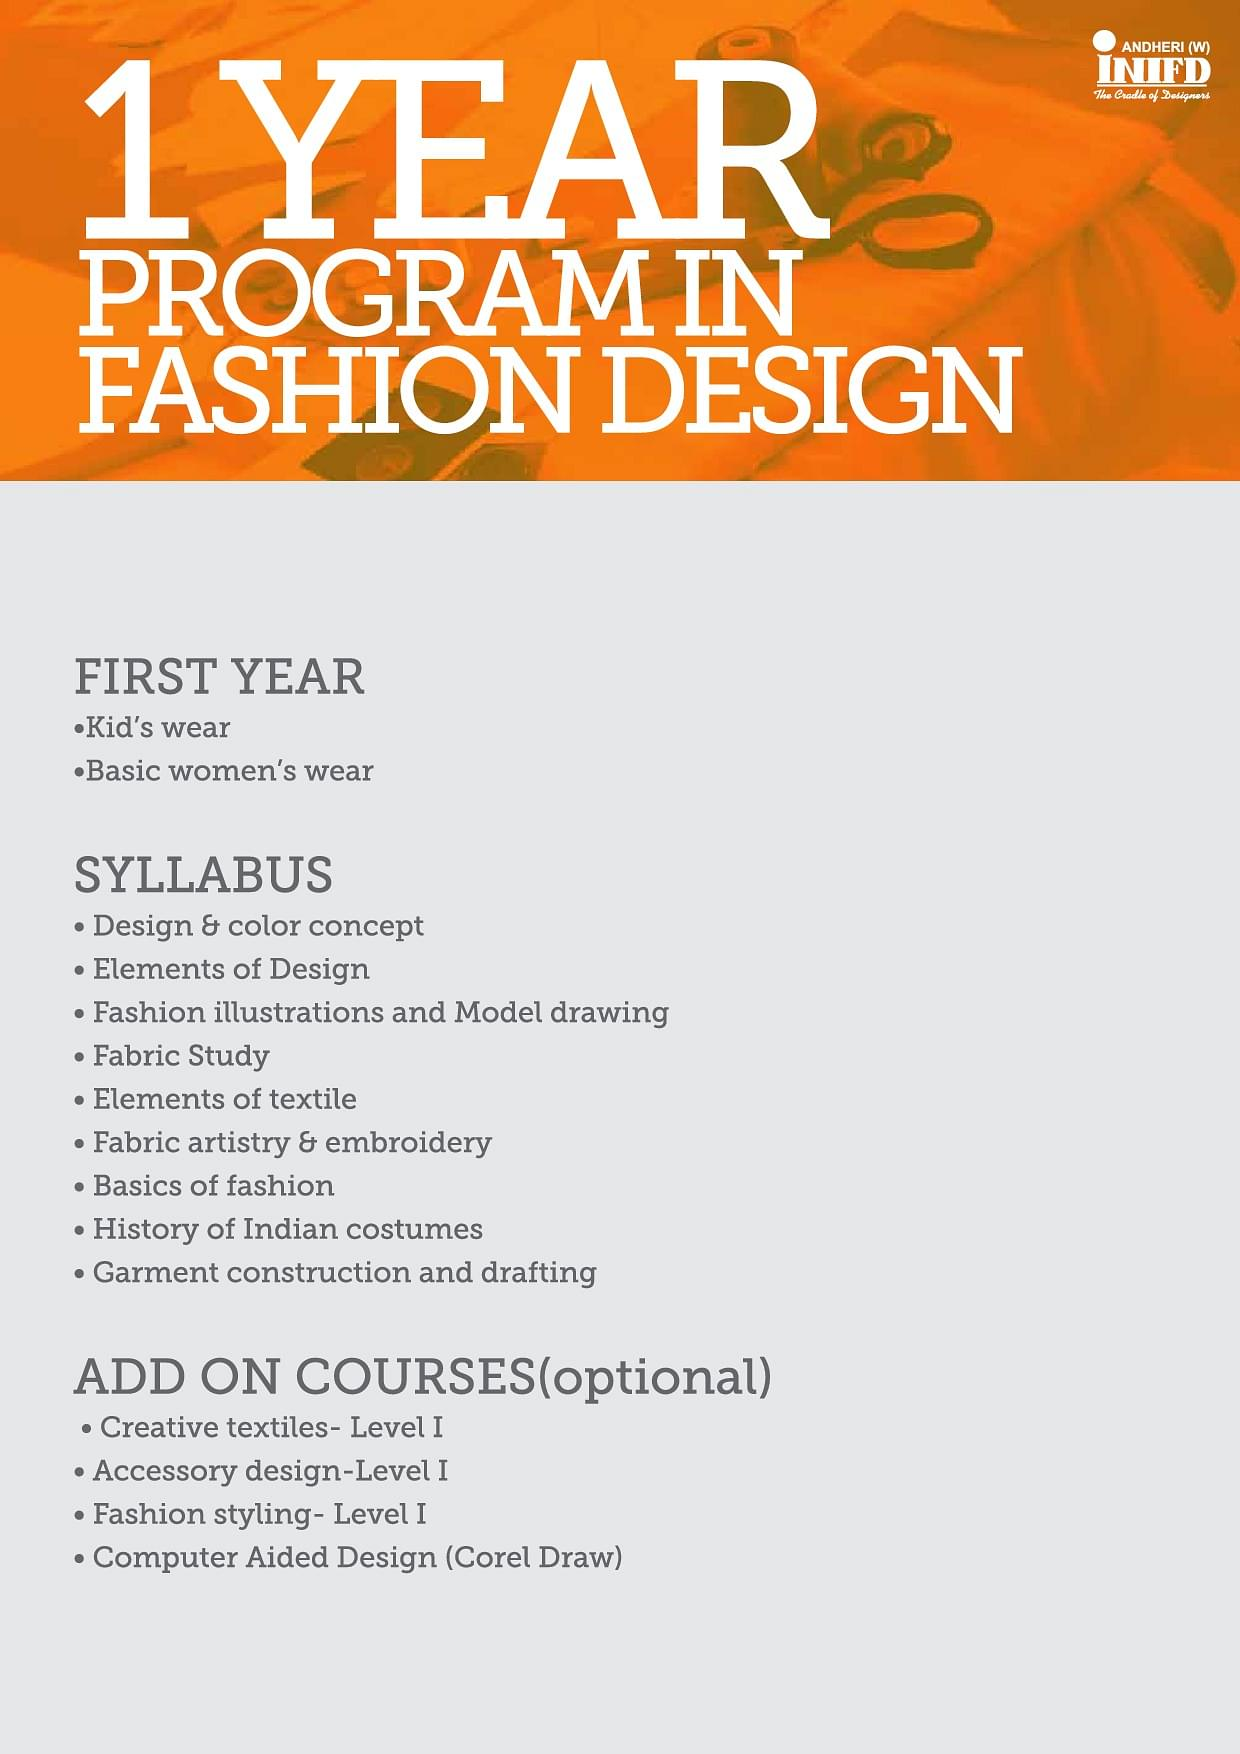 International Institute Of Fashion Design Inifd Mumbai Admissions Contact Website